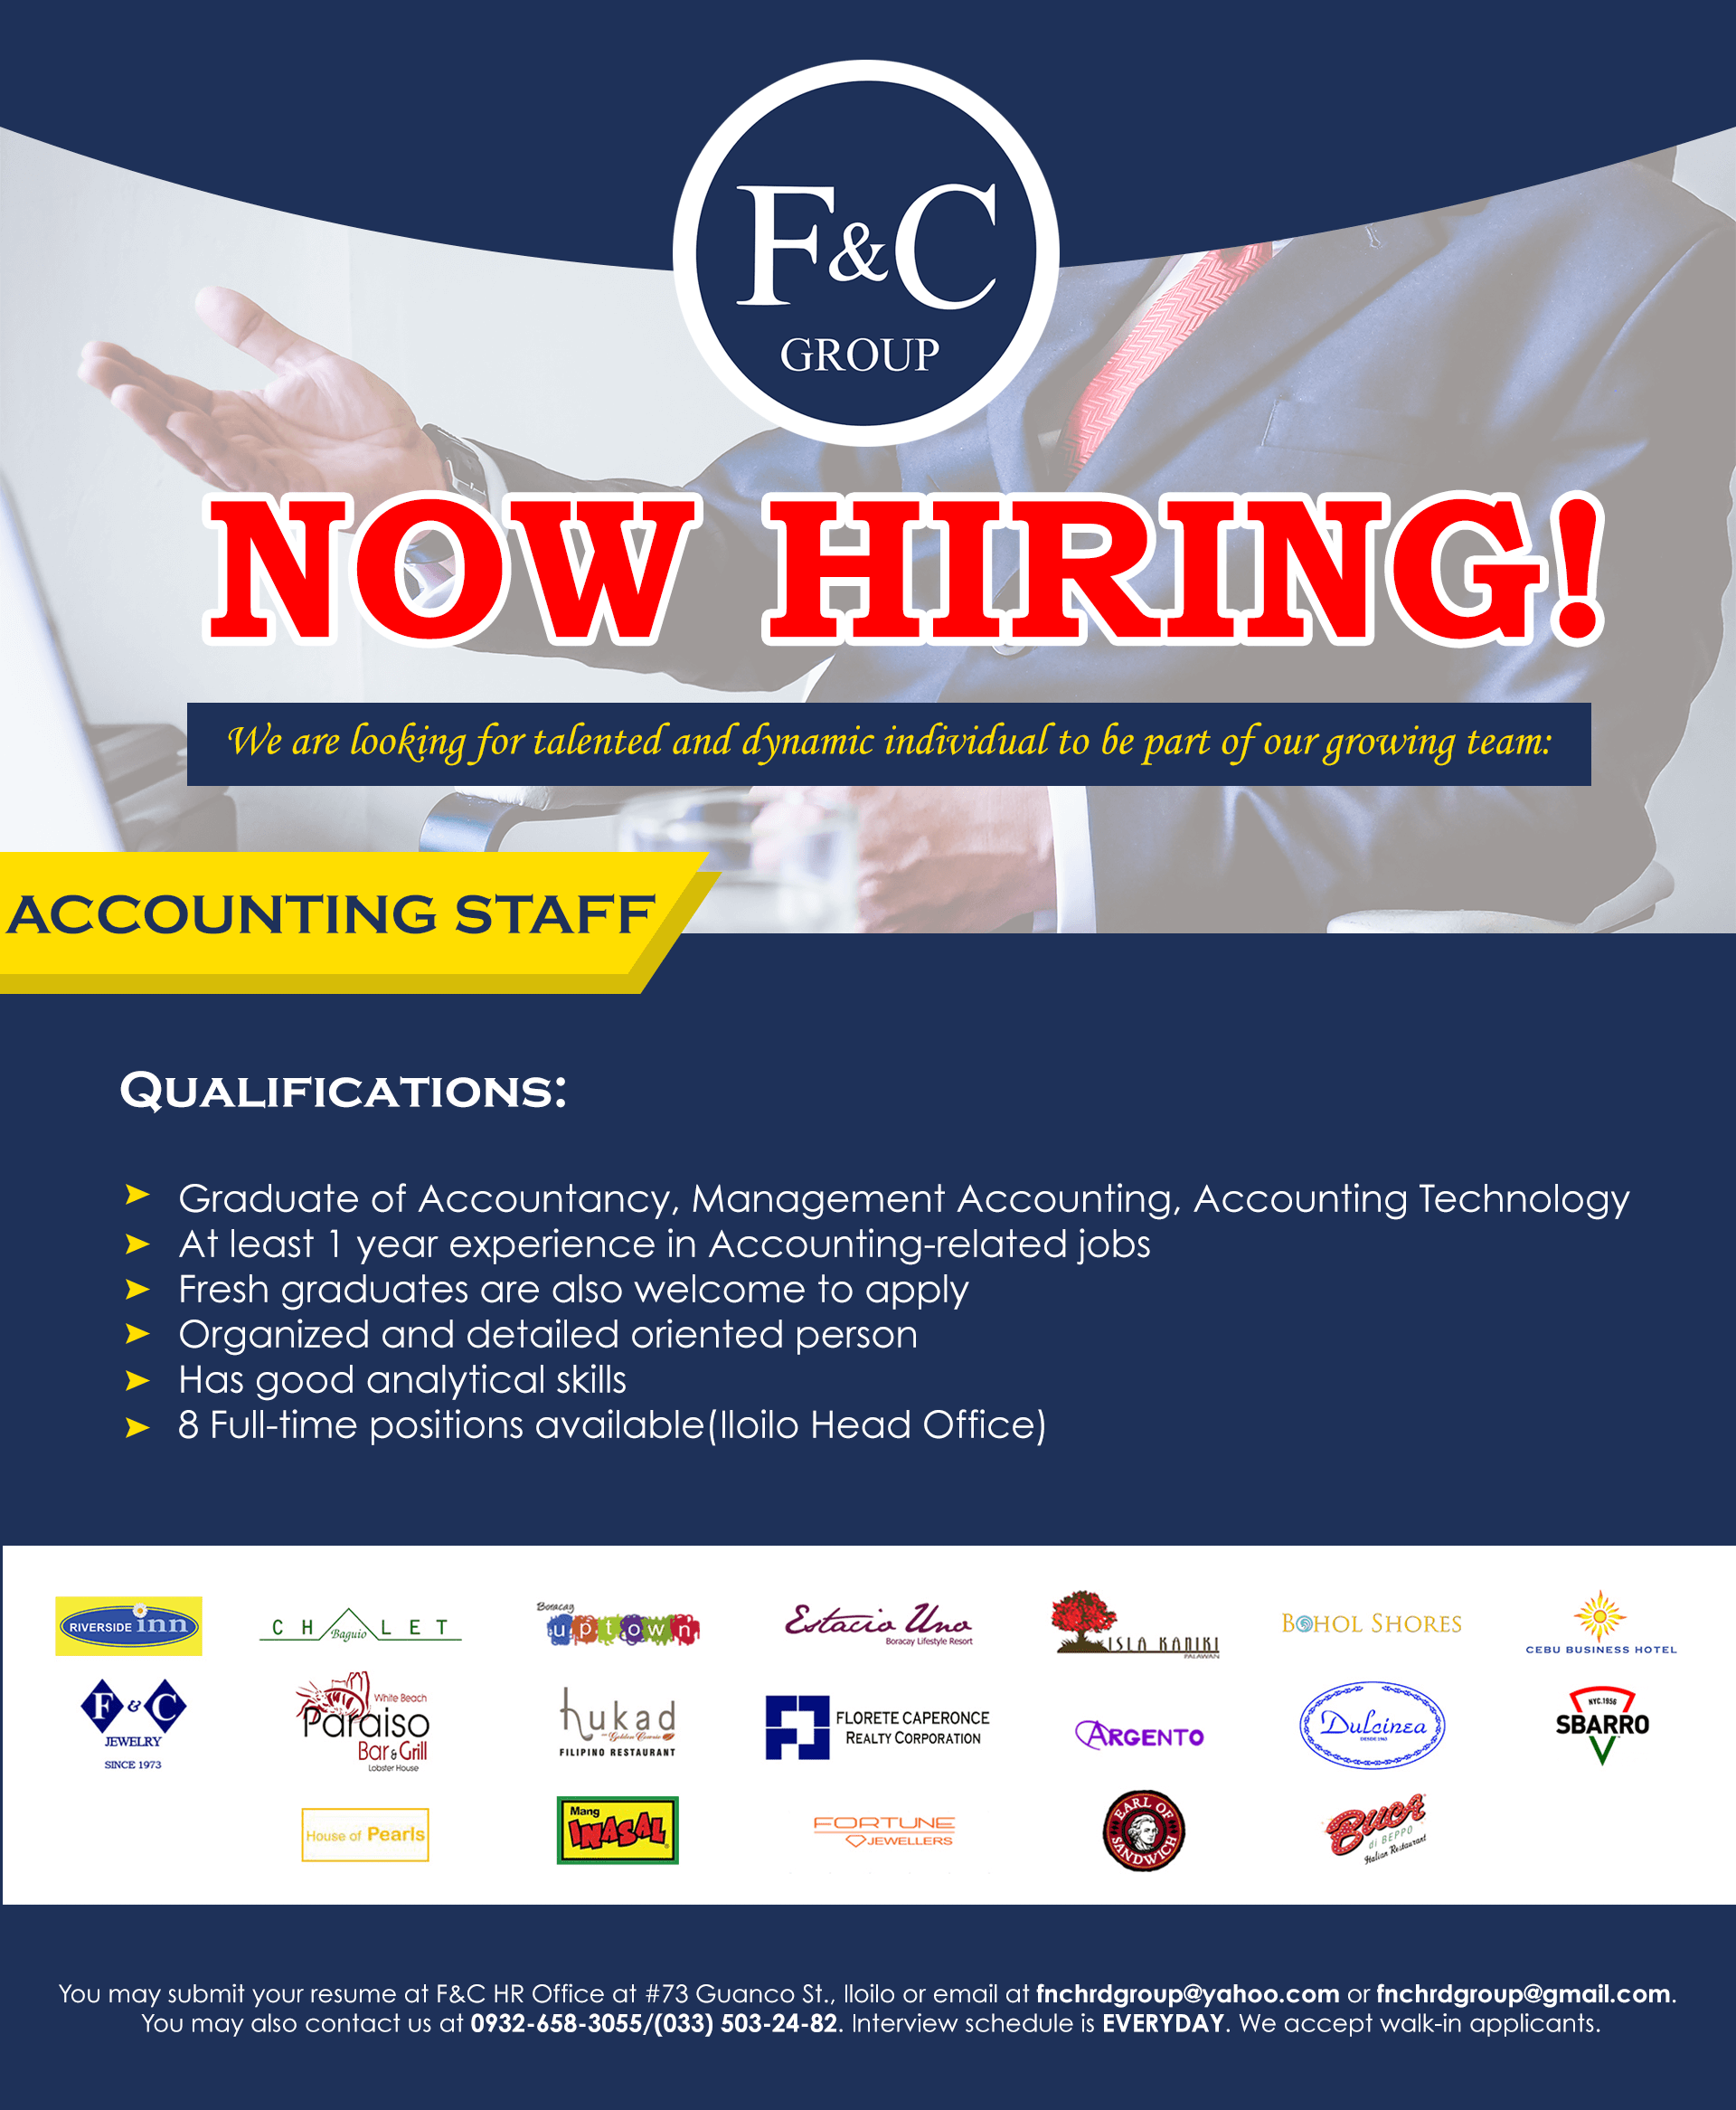 fncgroup-careers-accounting-staff